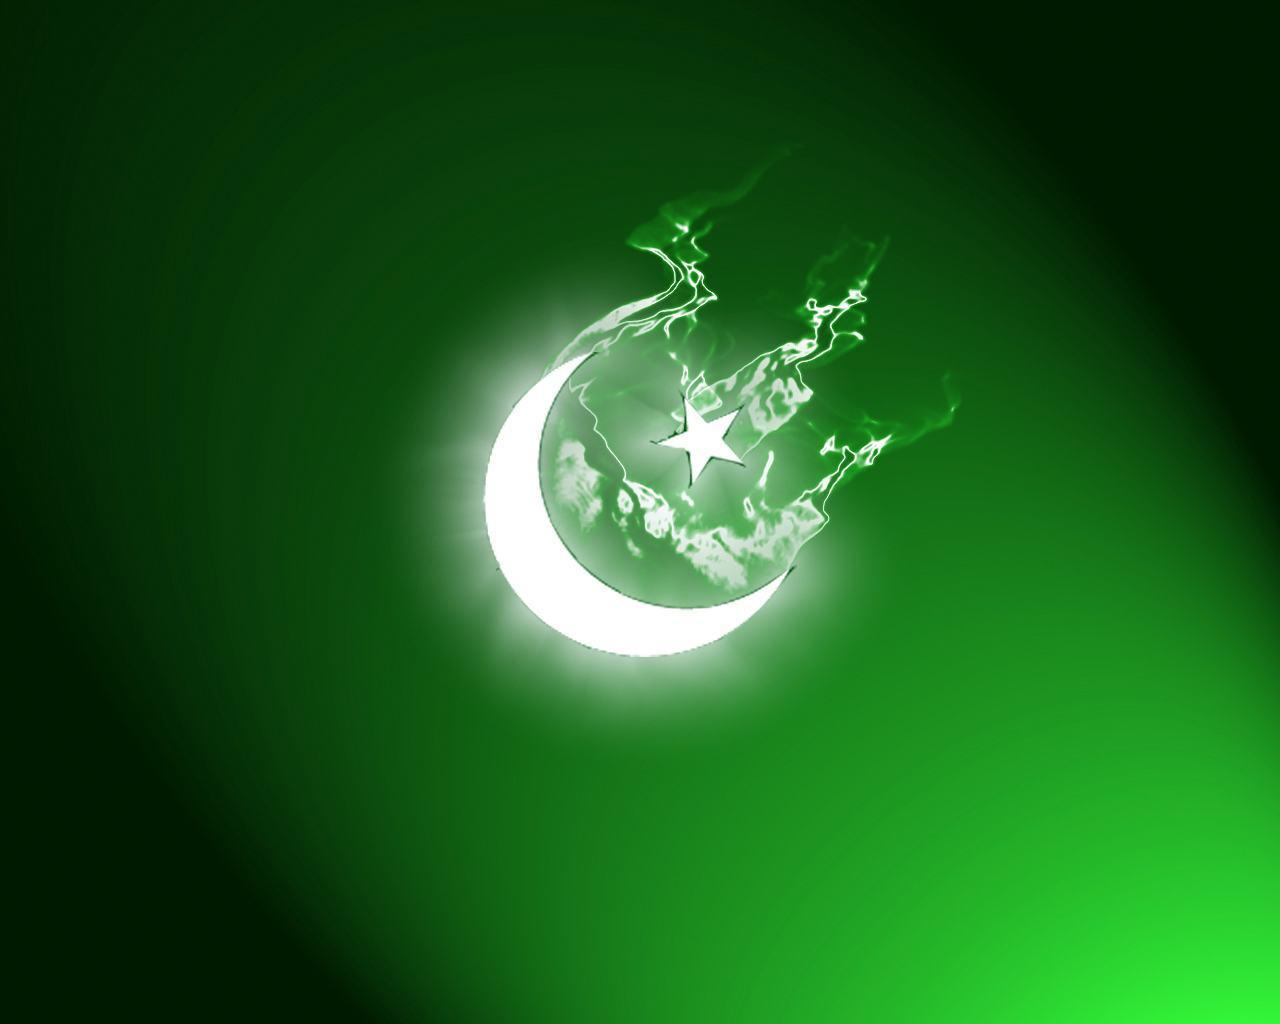 Pakistan Flag Wallpapers HD 2015 1280x1024